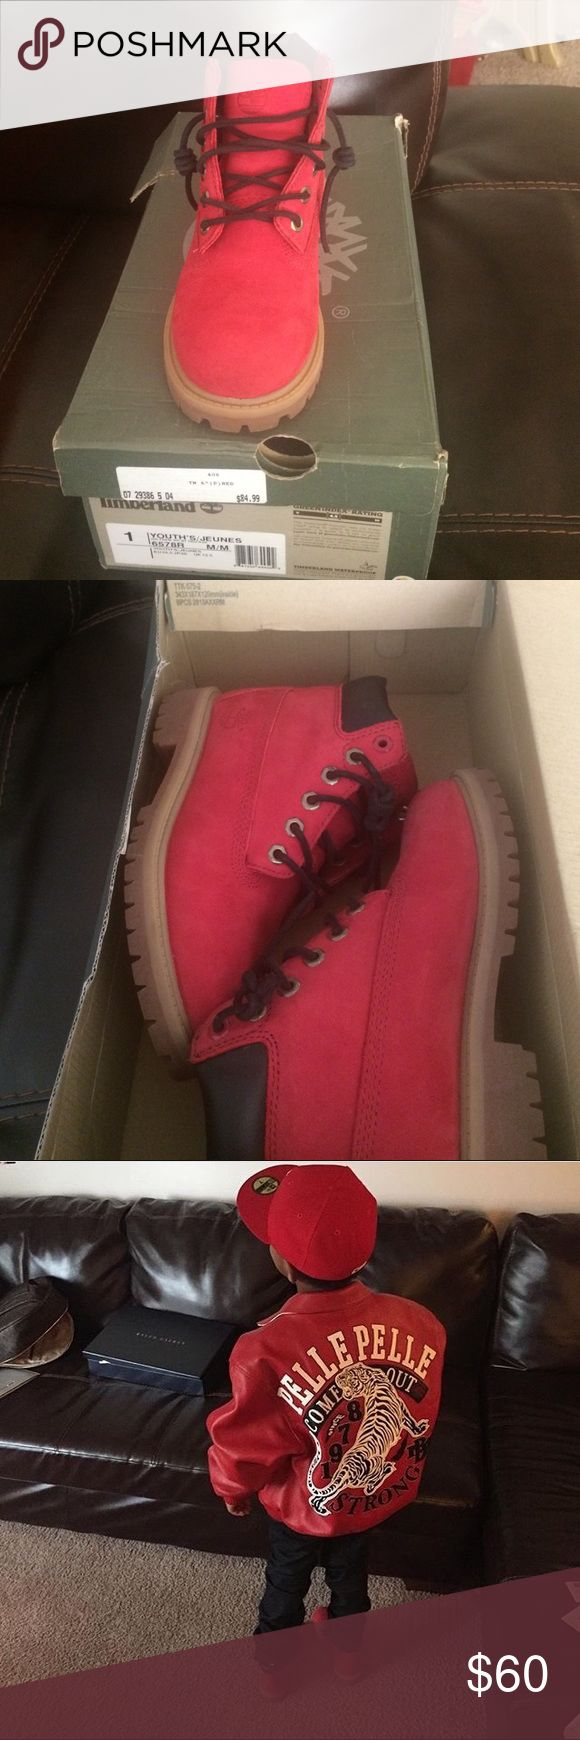 New timberlands boots for a boy Size 1 timberlands Timberland Shoes Boots